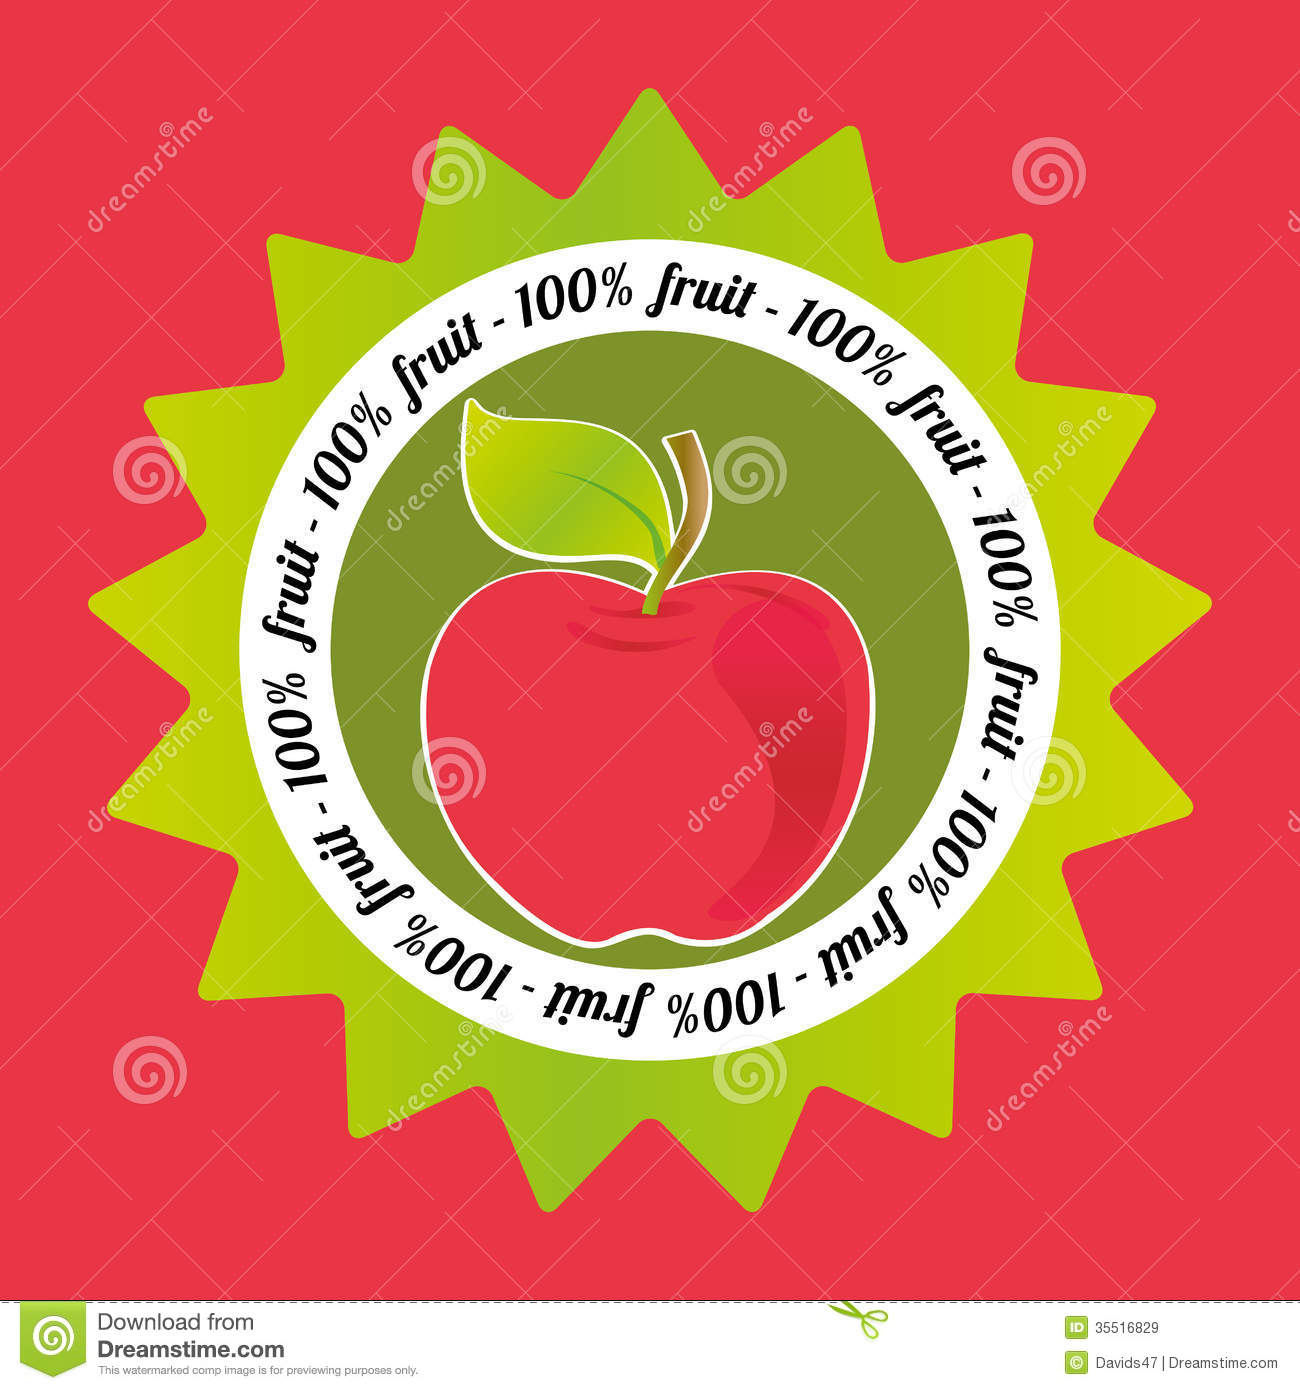 Apple Label Royalty Free Stock Images